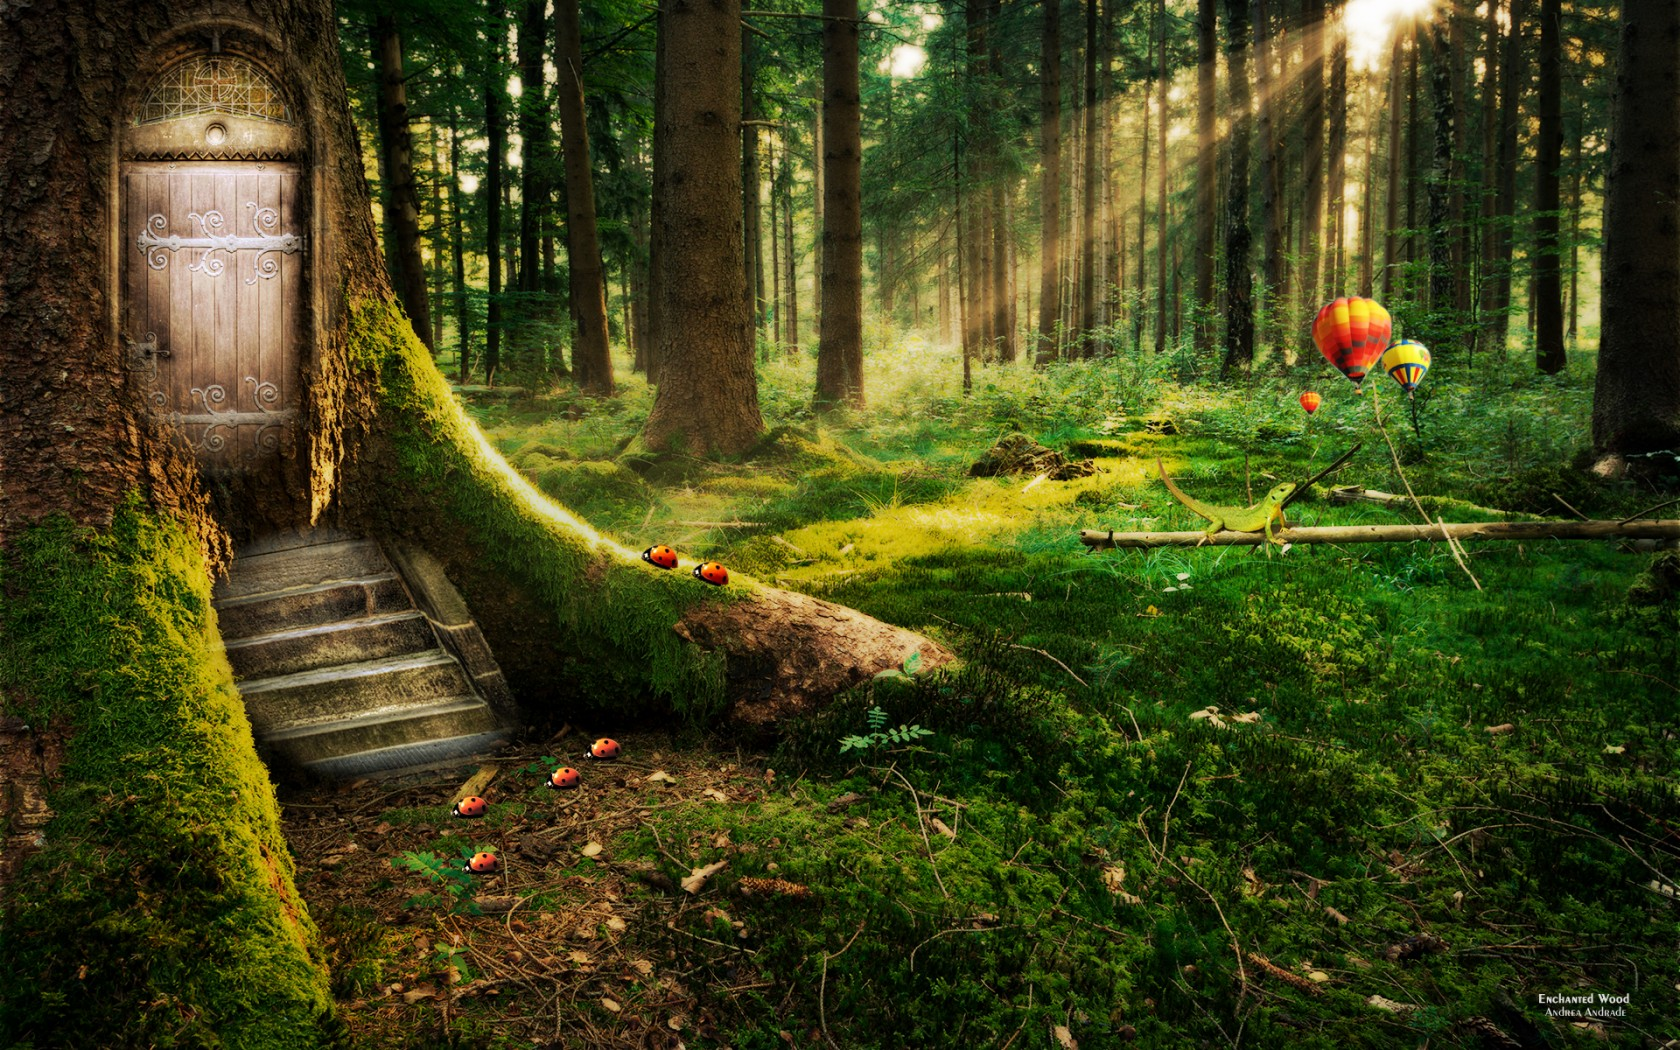 Enchanted Forest Wallpapers  HD Wallpapers  ID 11925